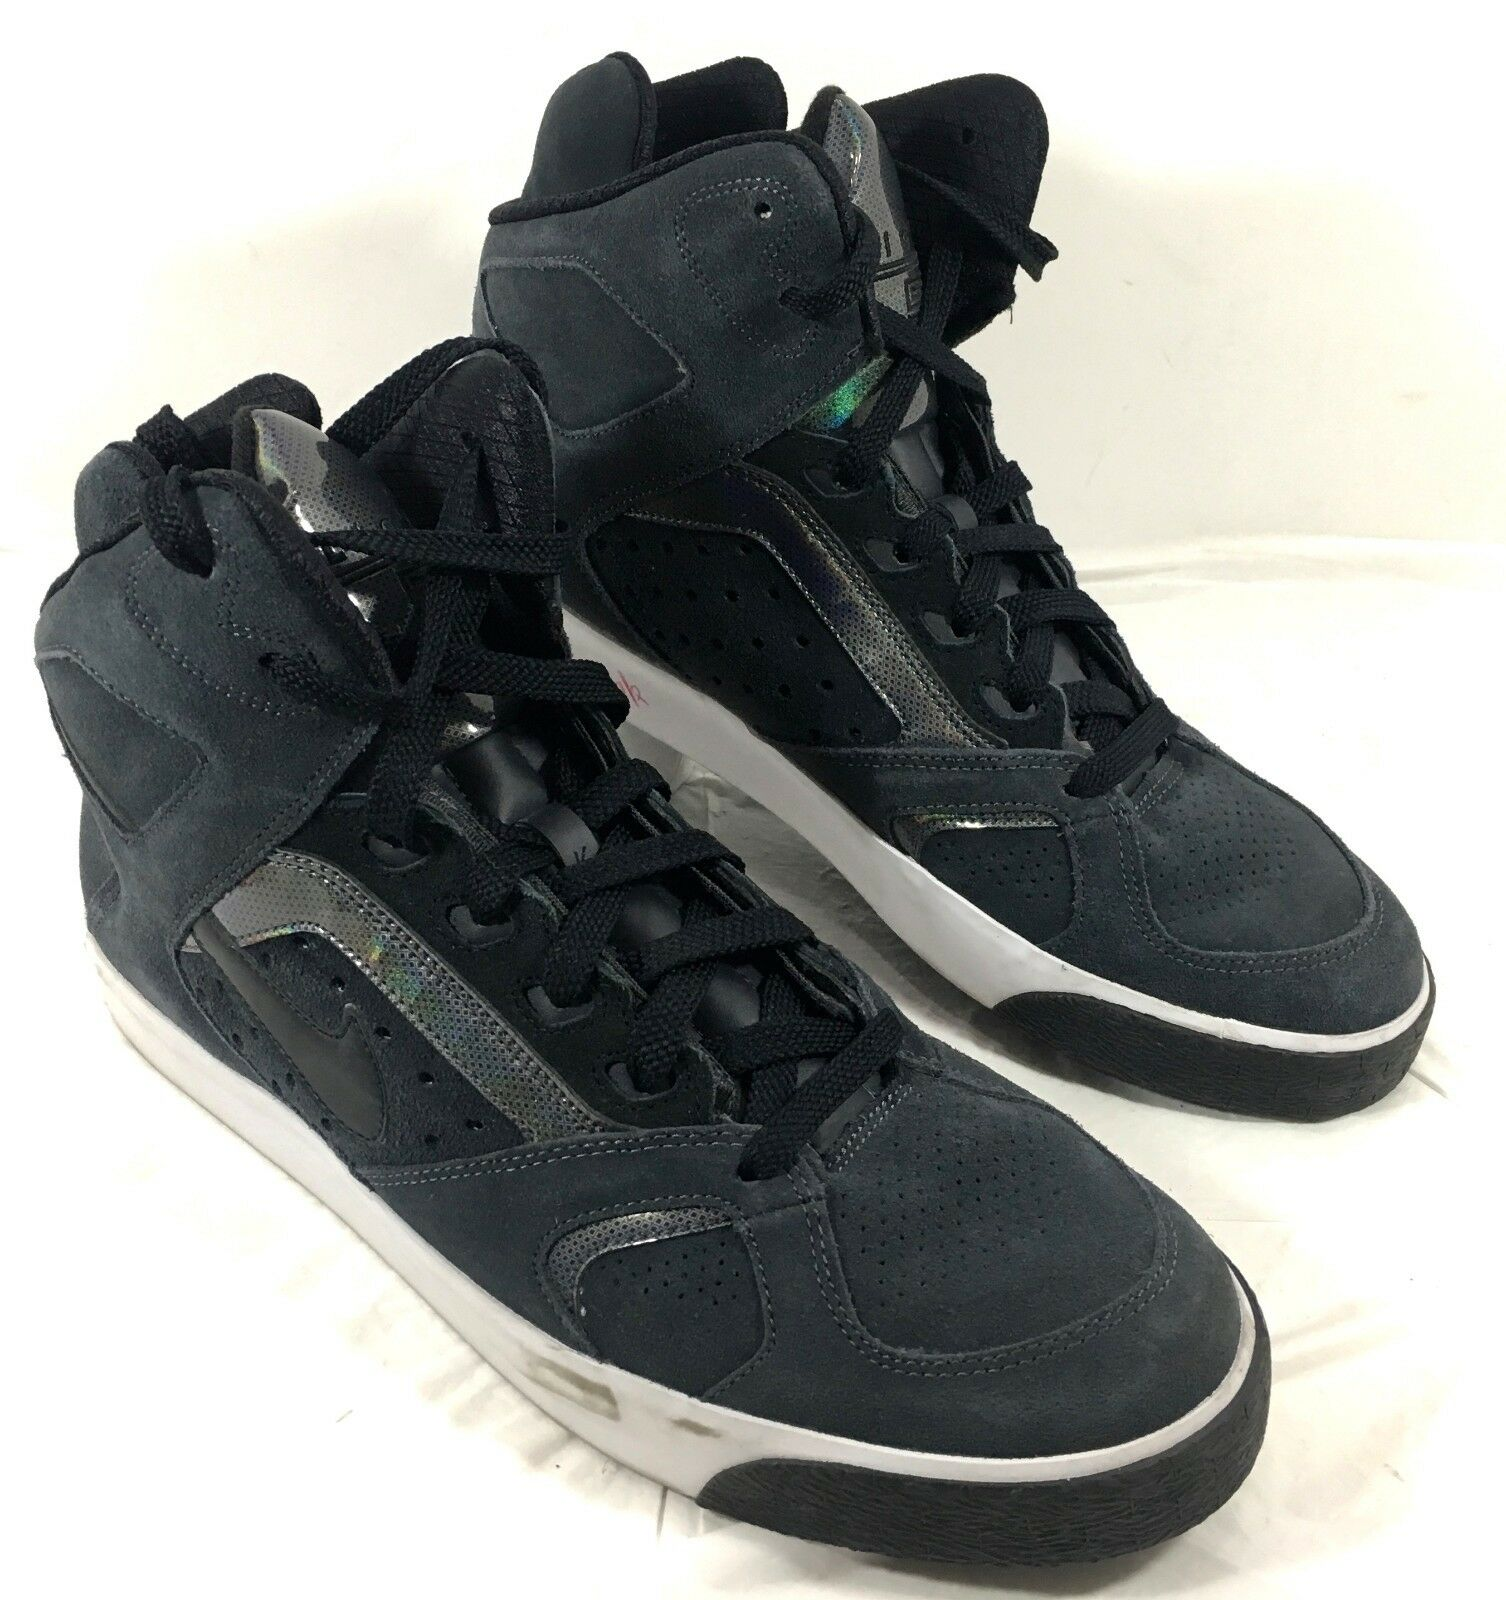 Men's Nike Auto Flight High Ankle Skate Shoes Anthracite Gray Suede Sz 13